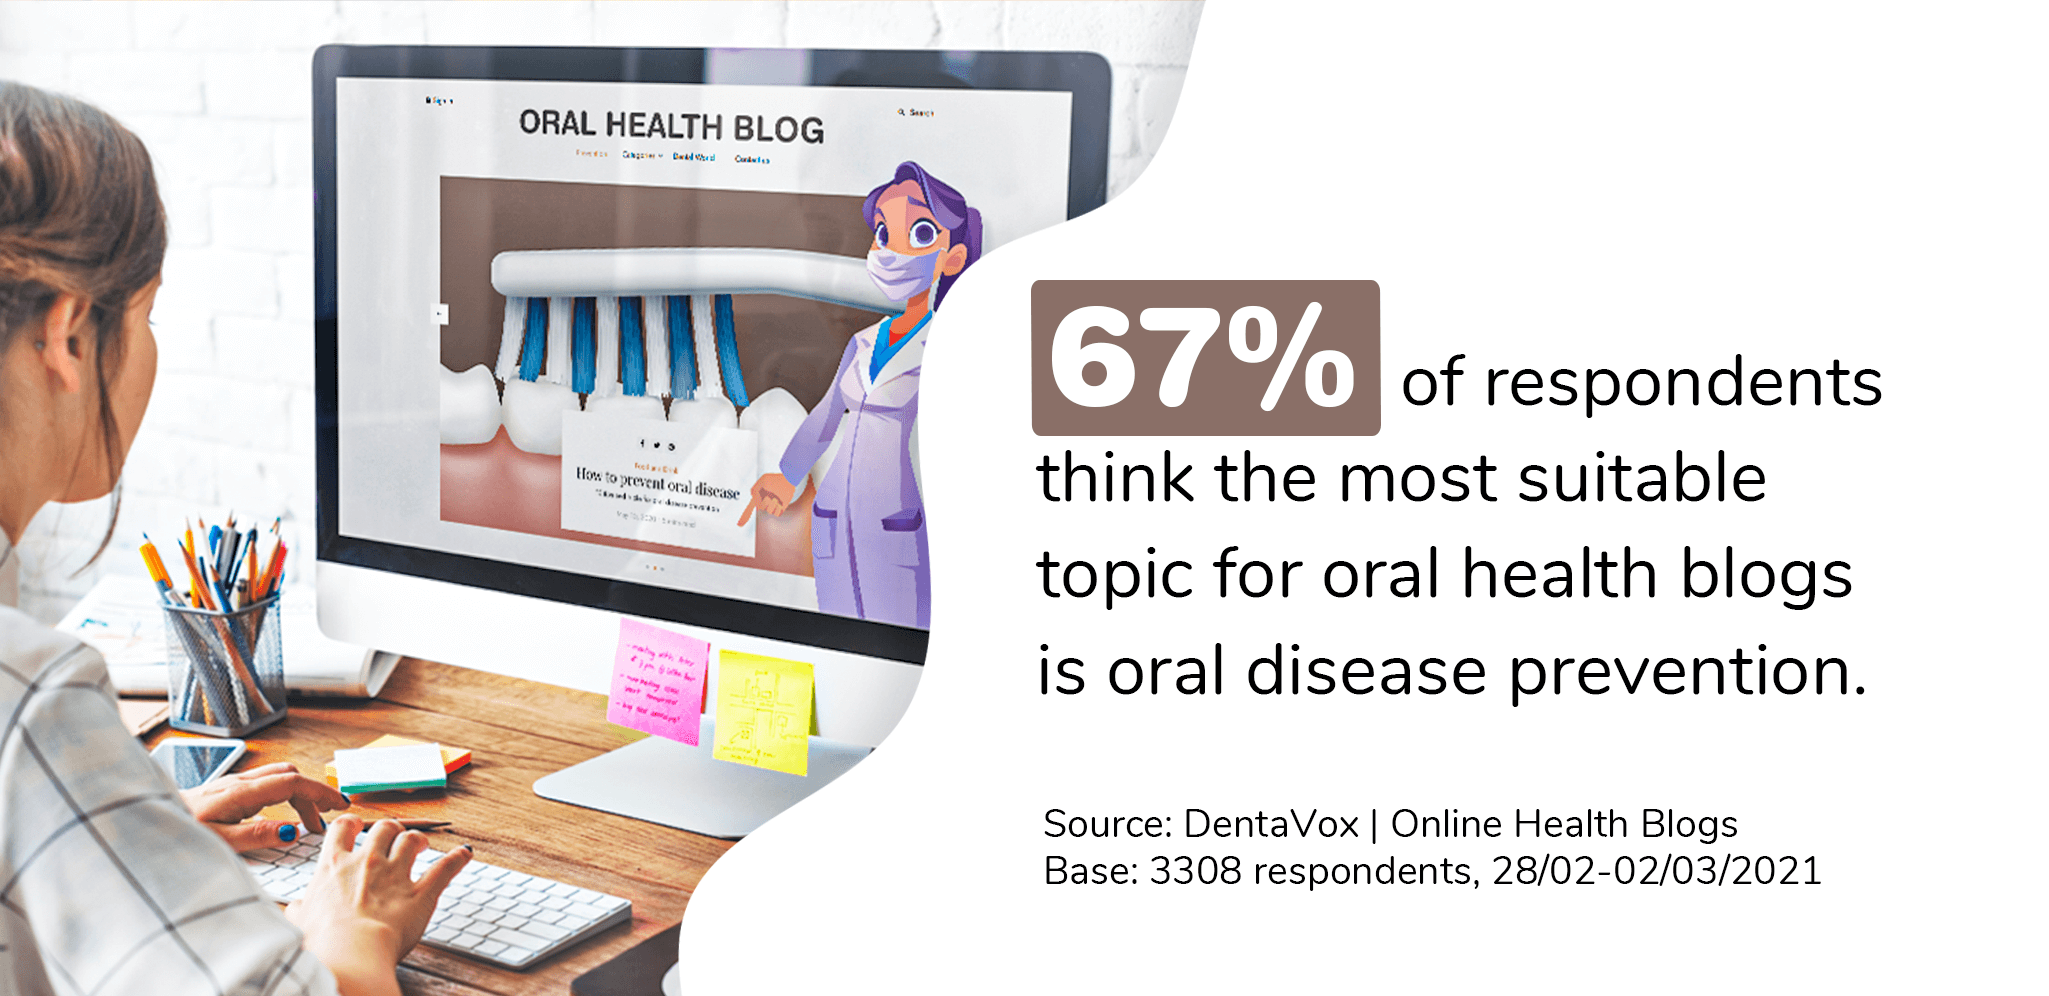 Dentavox research oral health blog top topics soc